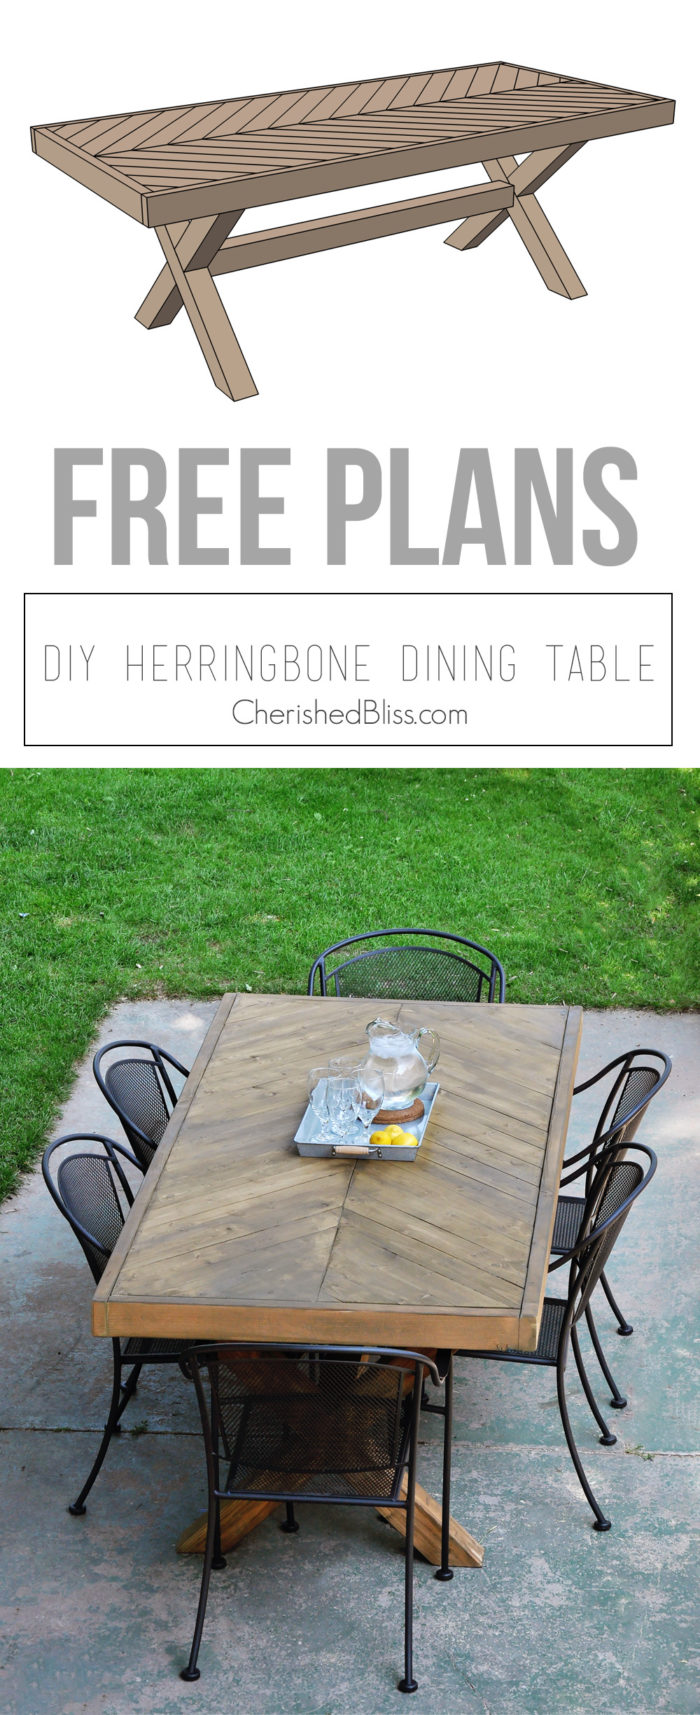 DIY Outdoor Table images